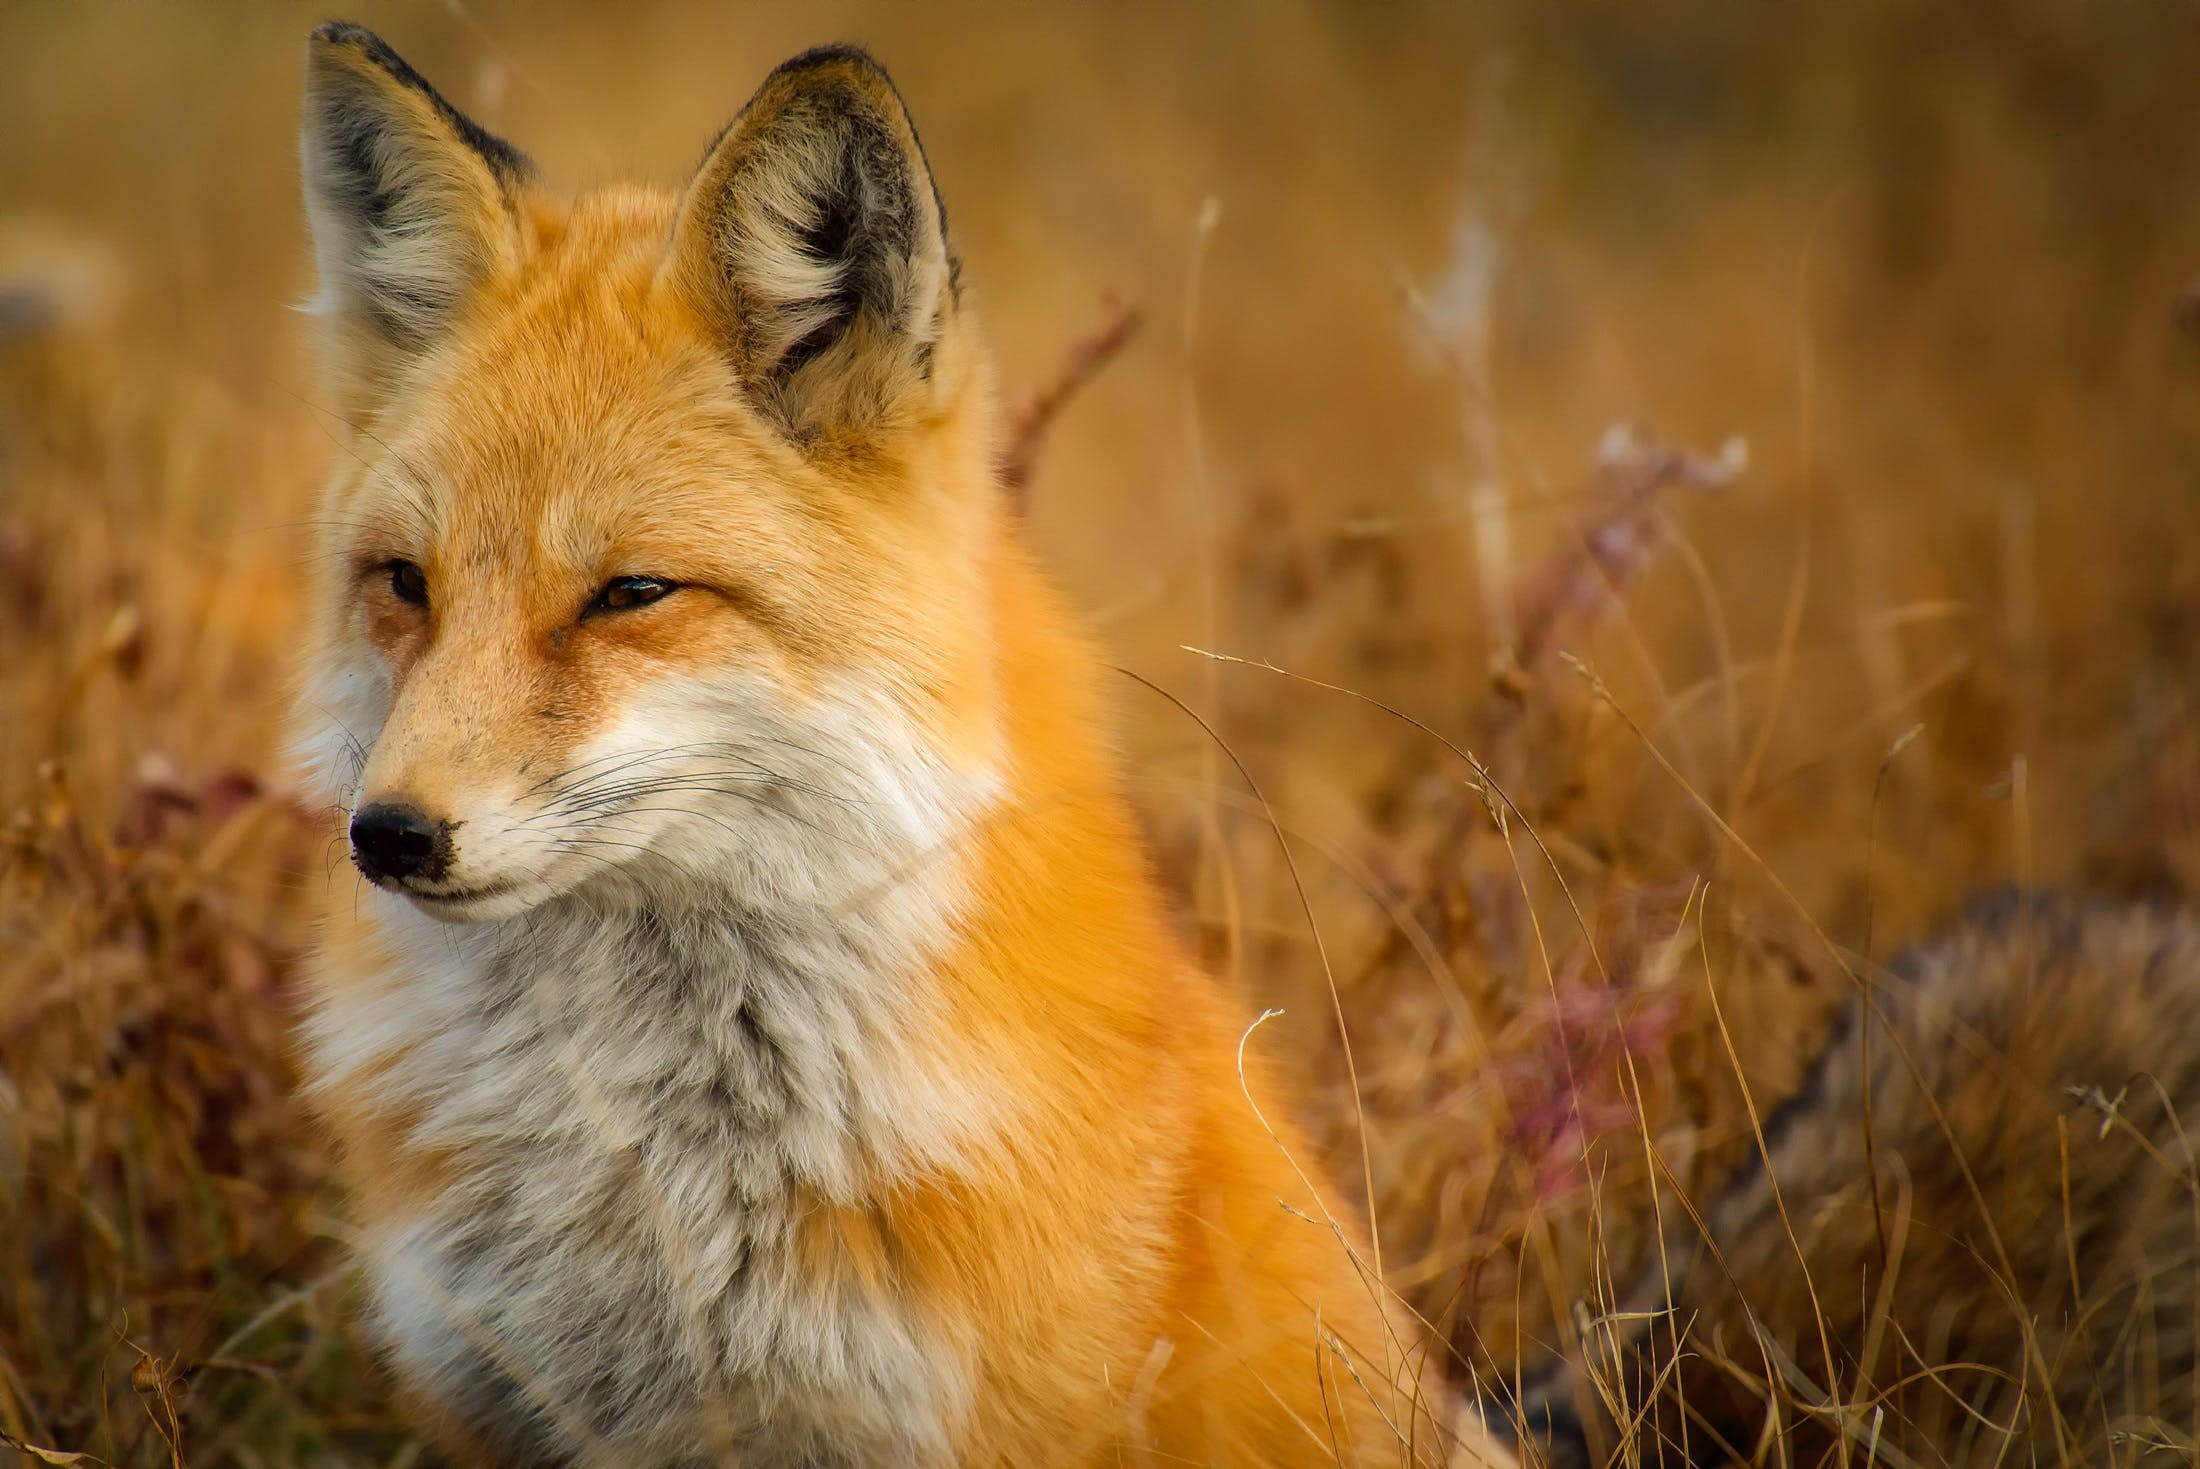 Close-up of Fox on Grass